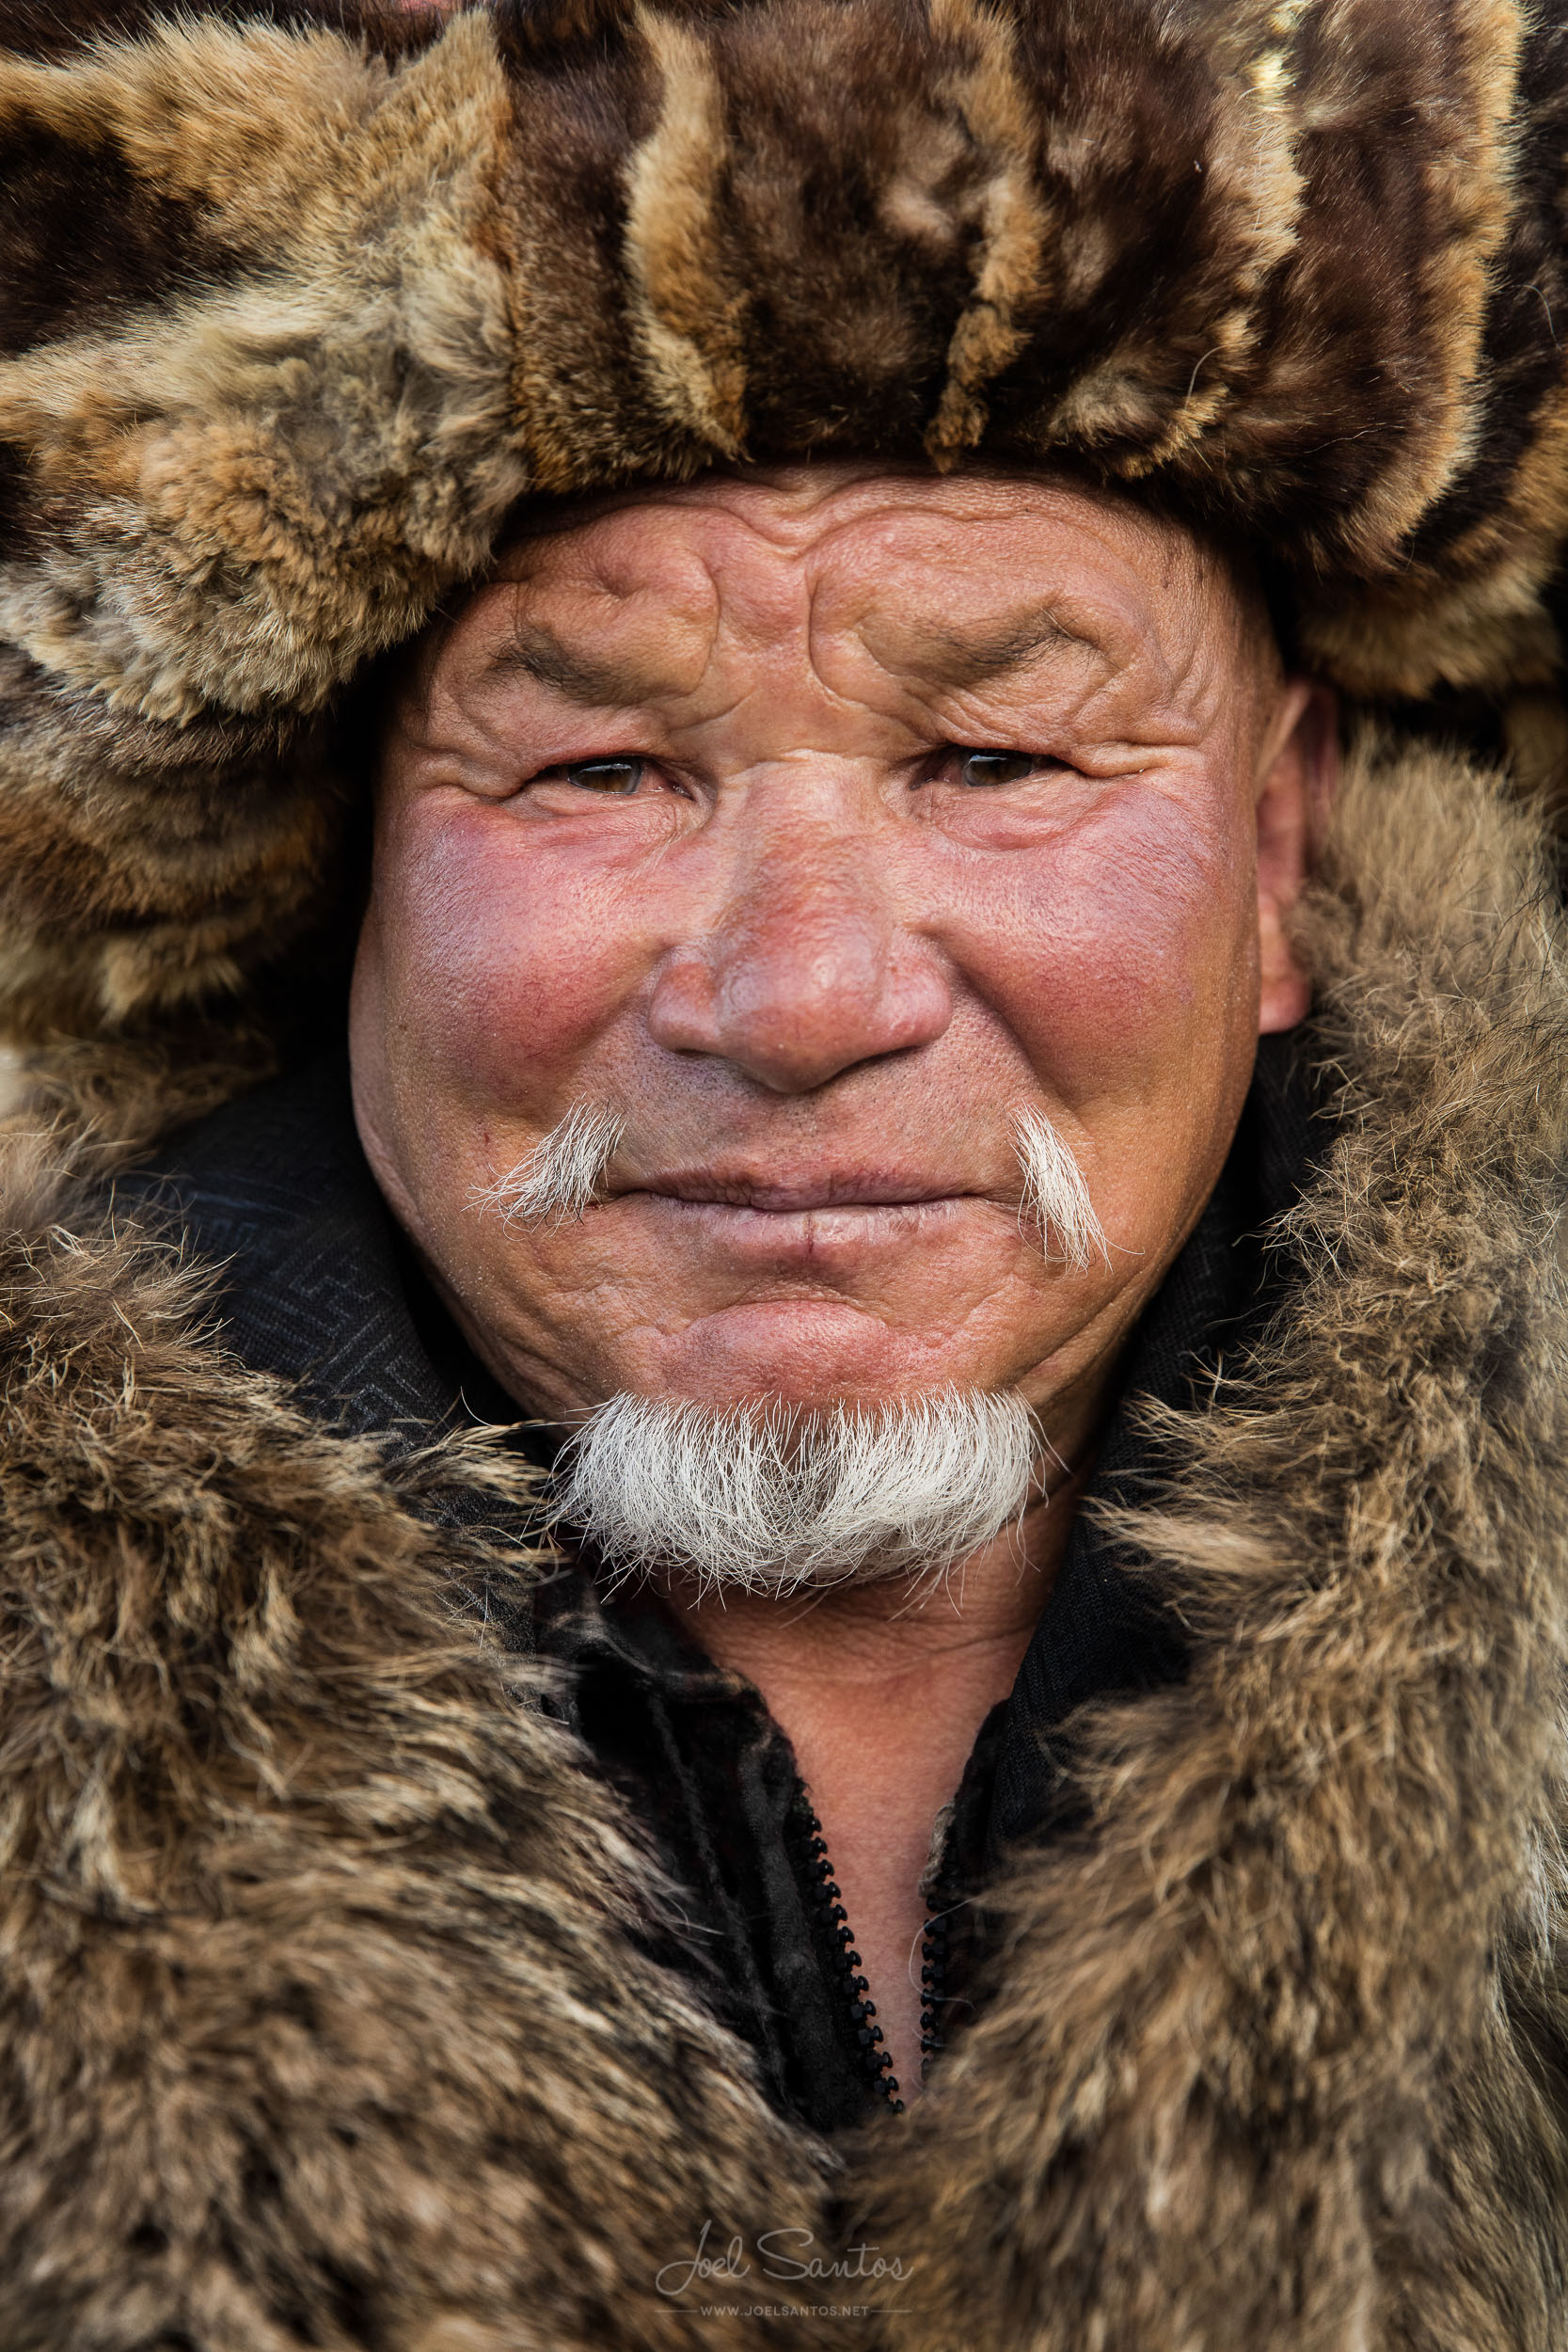 Shokhan's father, former Eagle Hunter, Altai, Western Mongolia